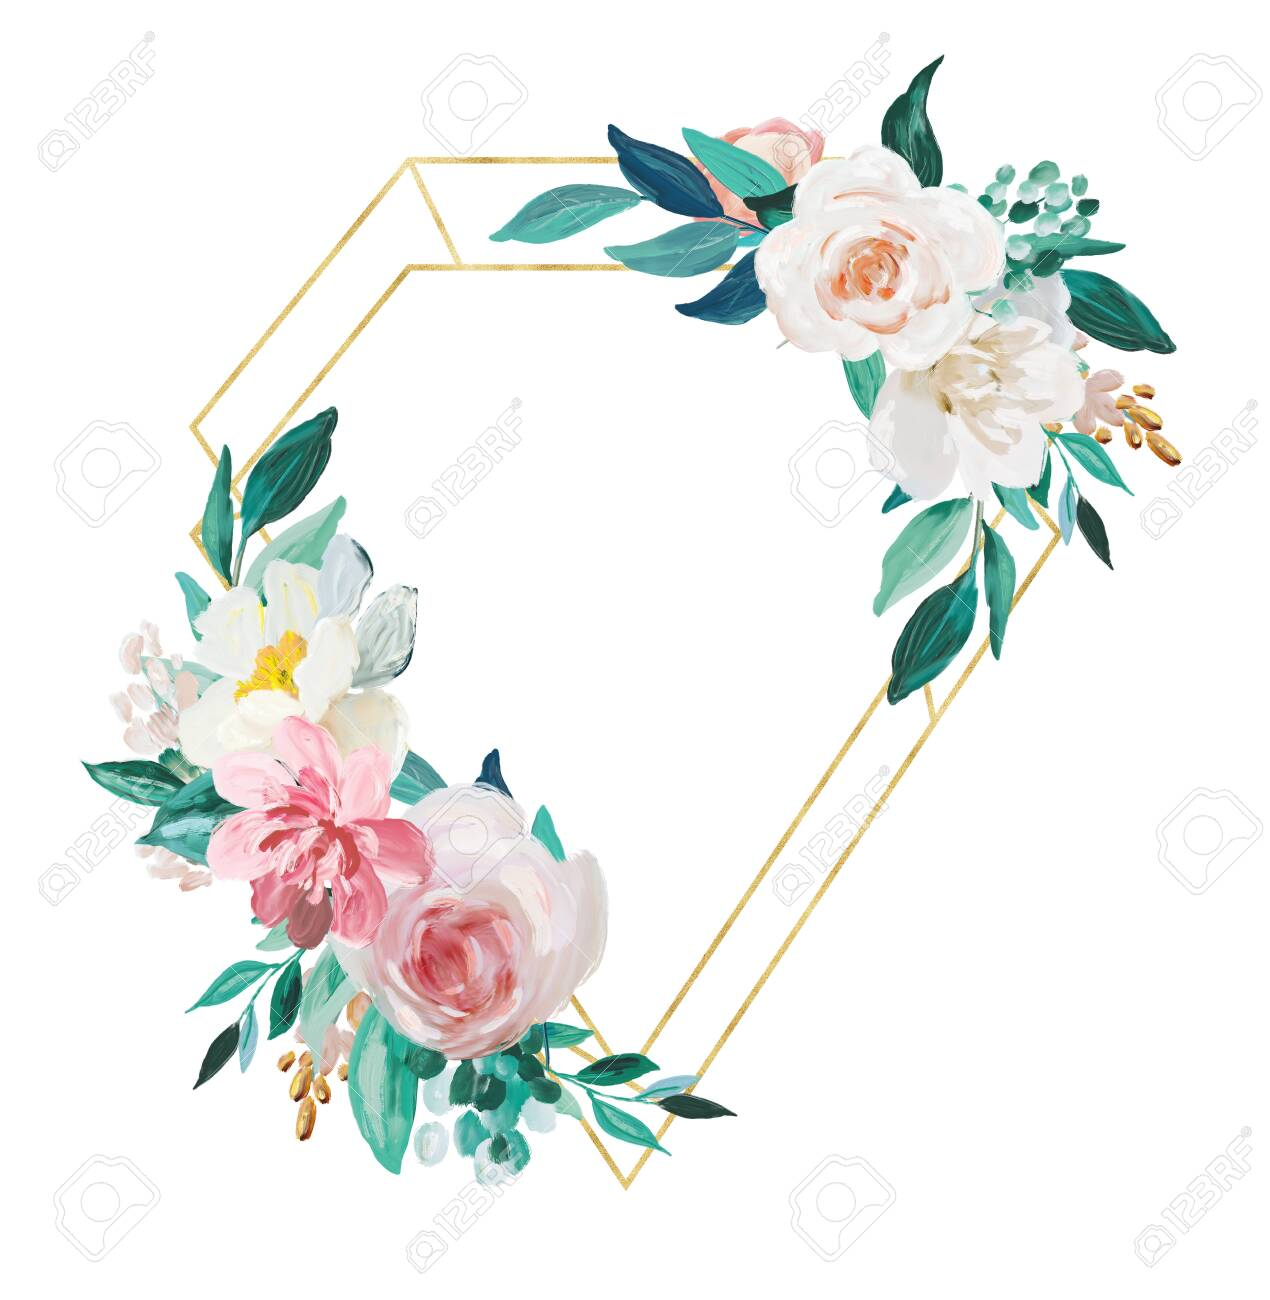 Blush And Mint Floral And Gold Frame Isolated On White Background